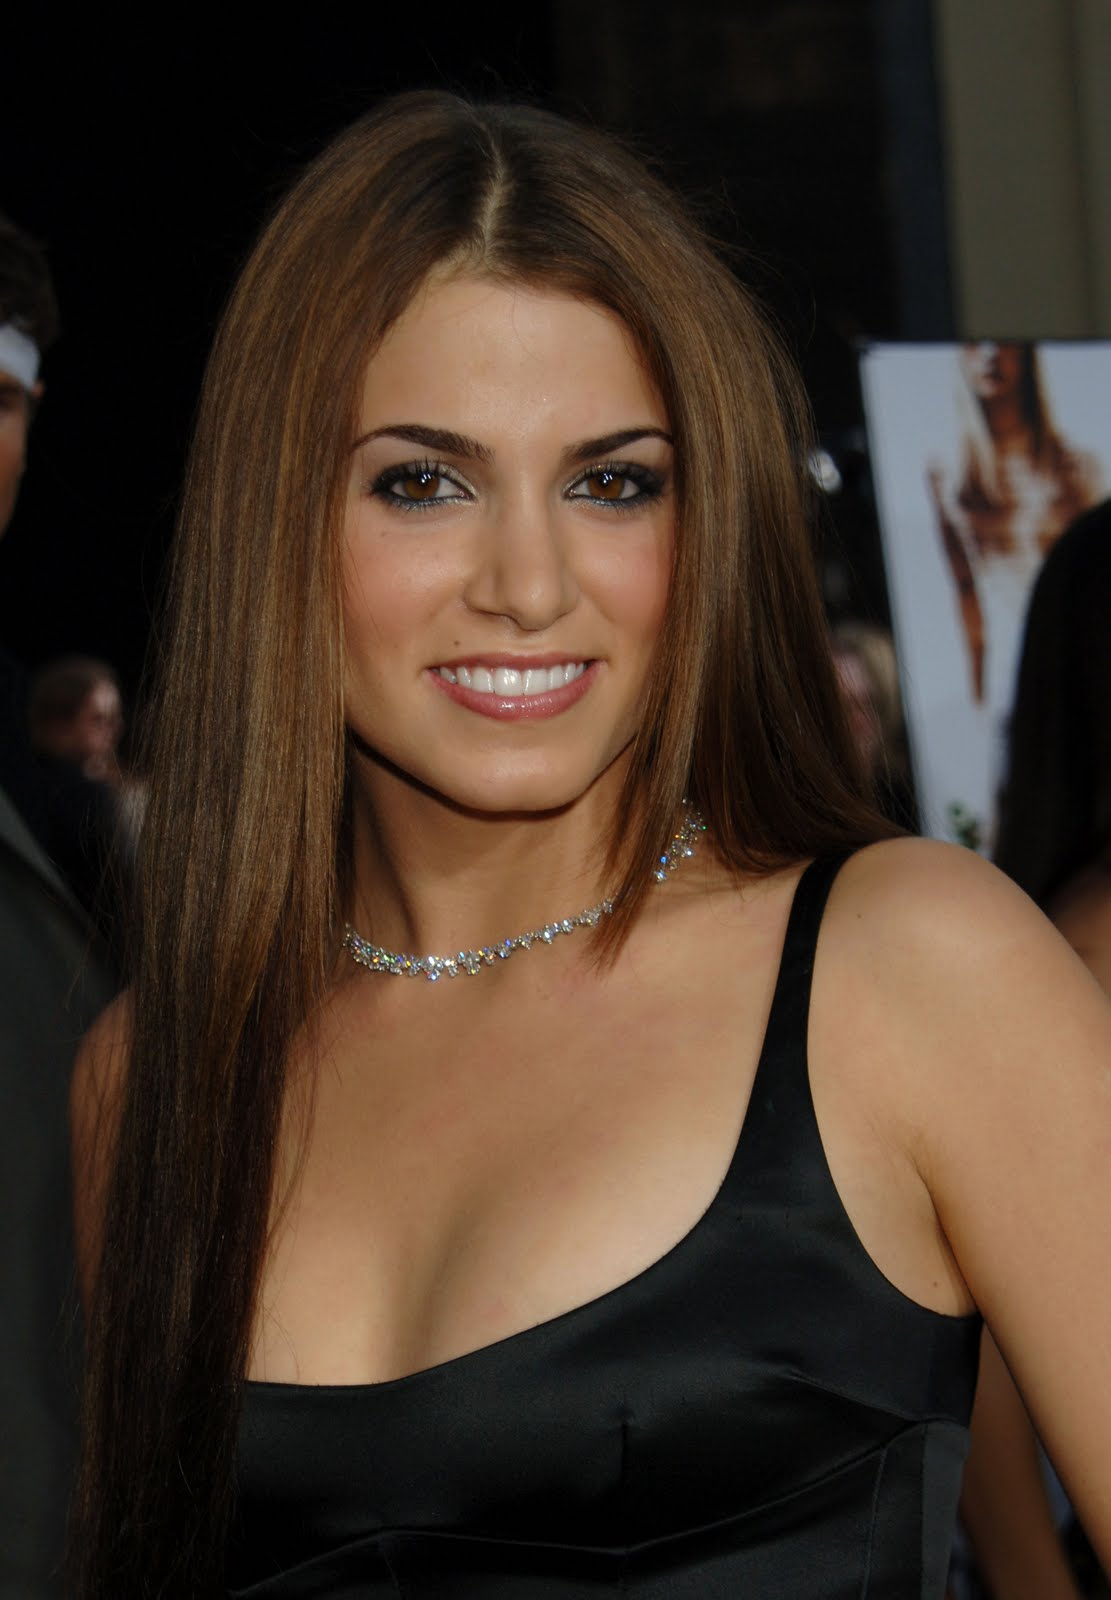 Sexy Nikki Reed nude (83 photo), Tits, Hot, Boobs, butt 2006